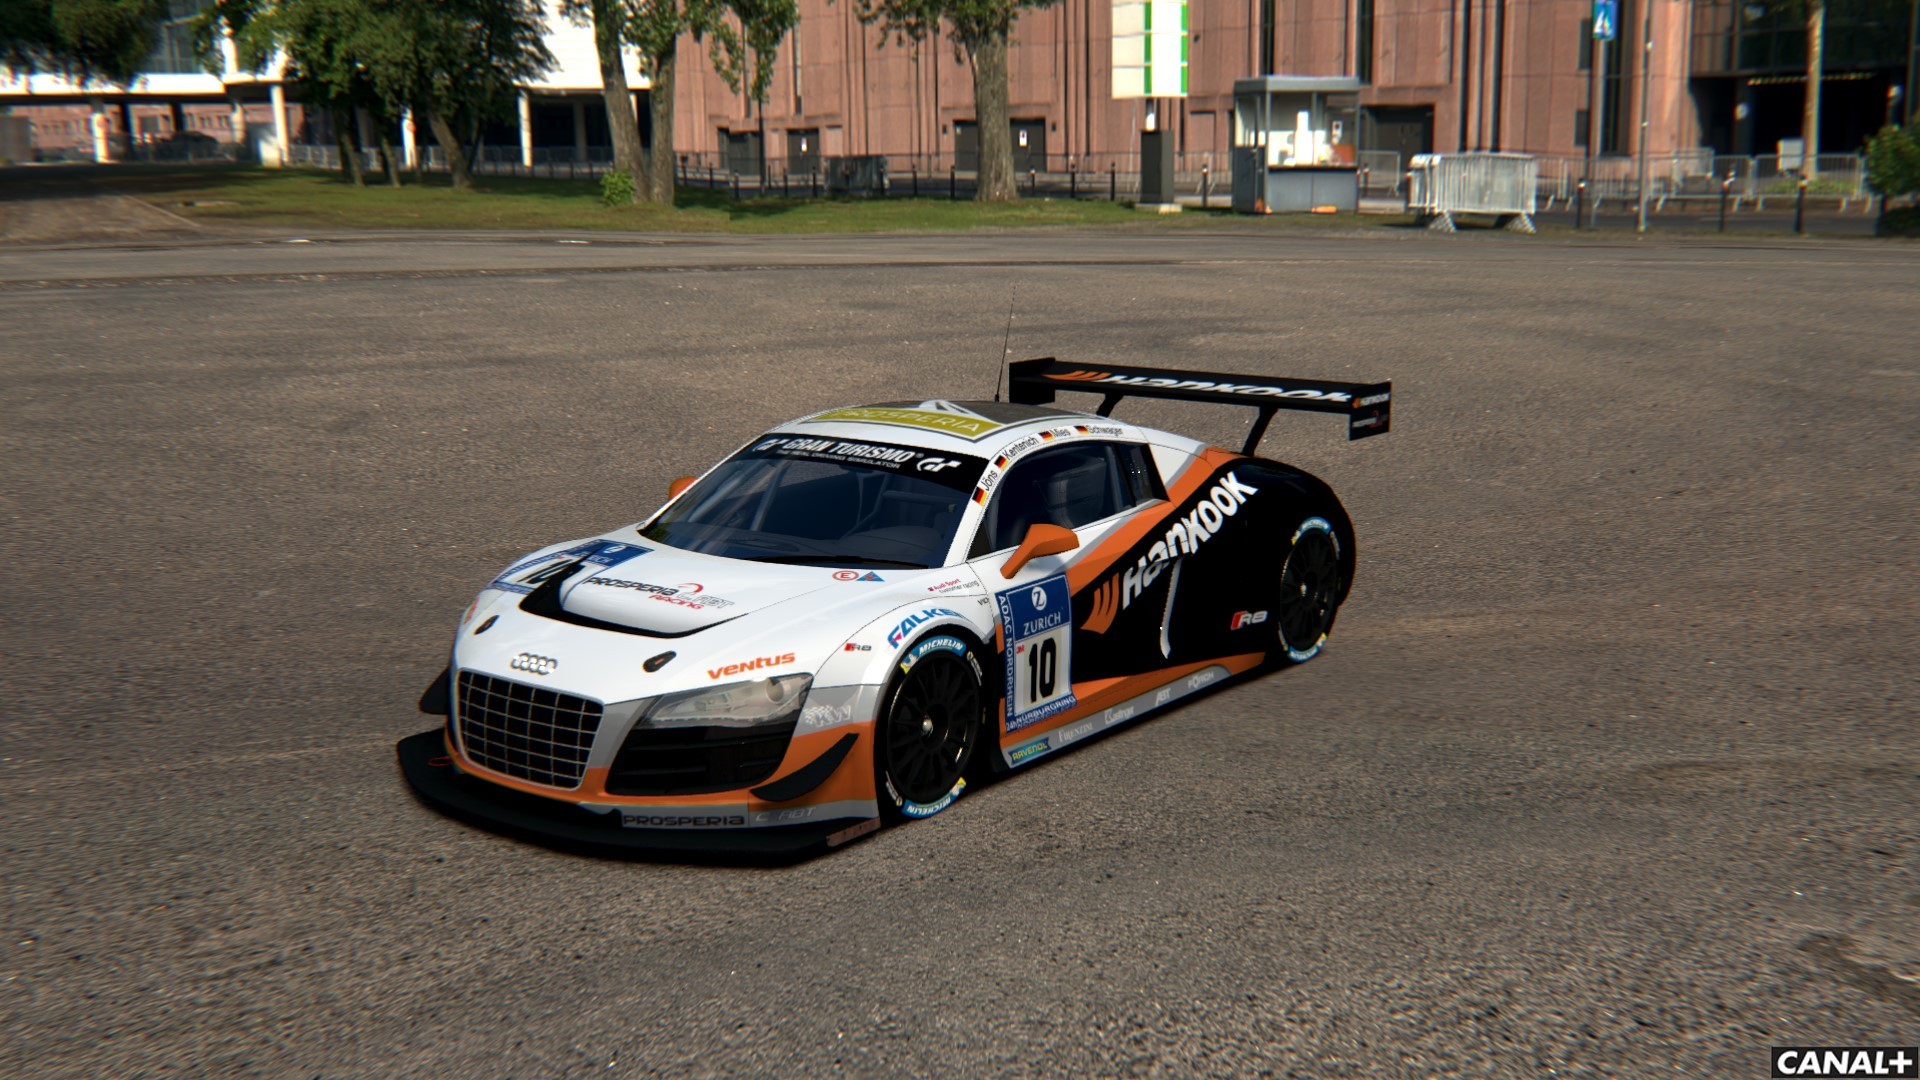 Showroom_audi_r8_lms_28-10-2014-23-59-33.jpg